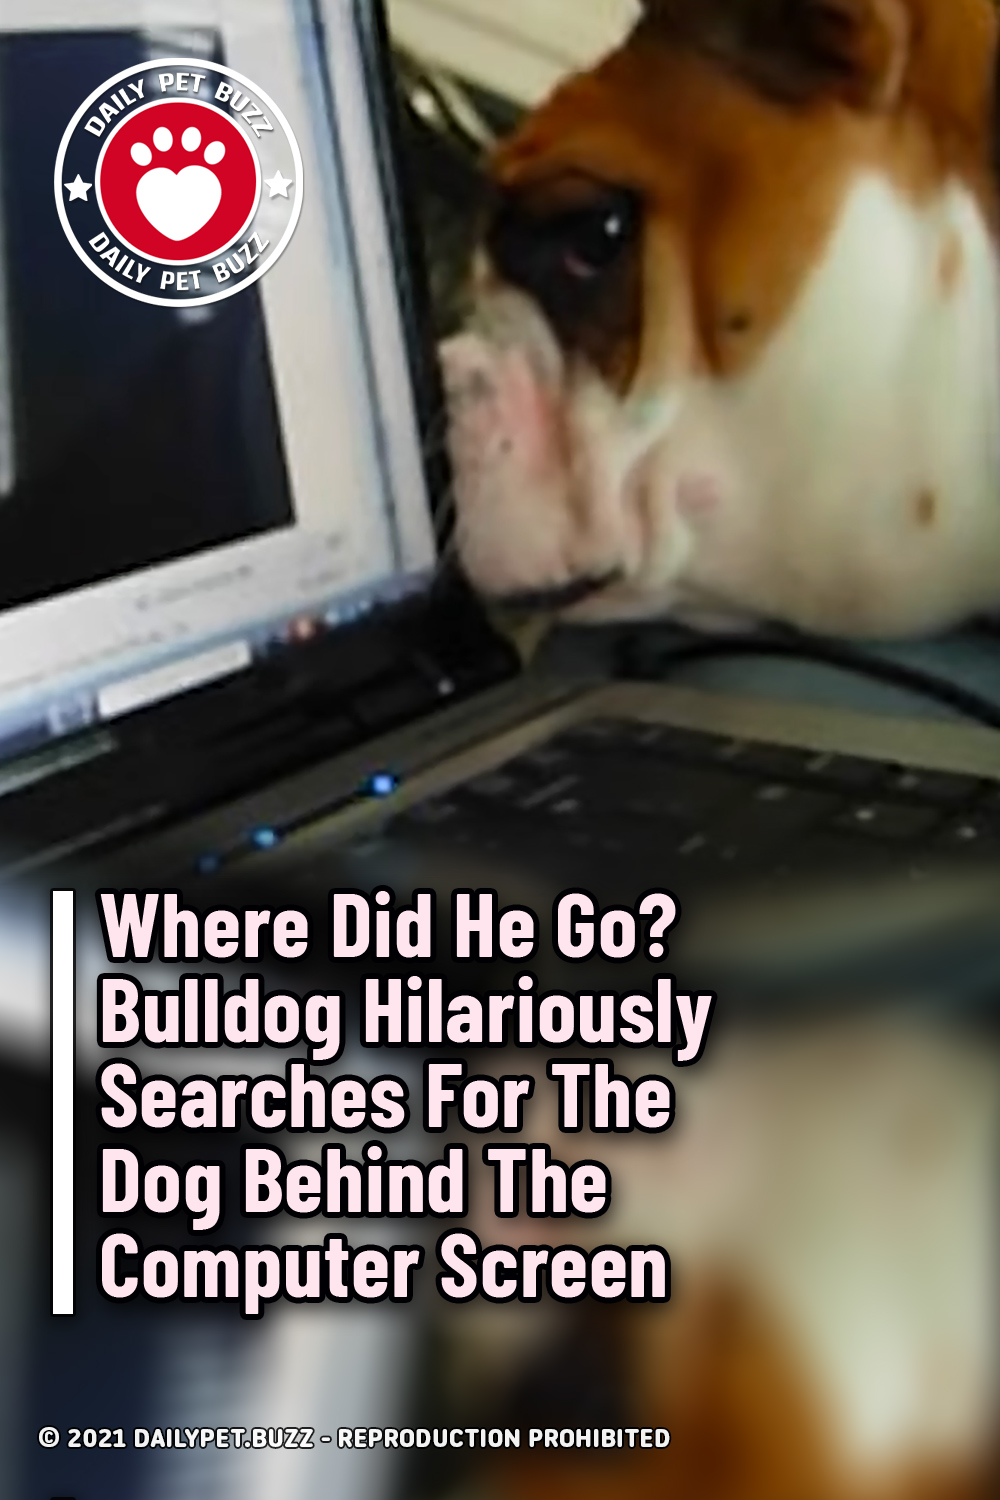 Where Did He Go? Bulldog Hilariously Searches For The Dog Behind The Computer Screen